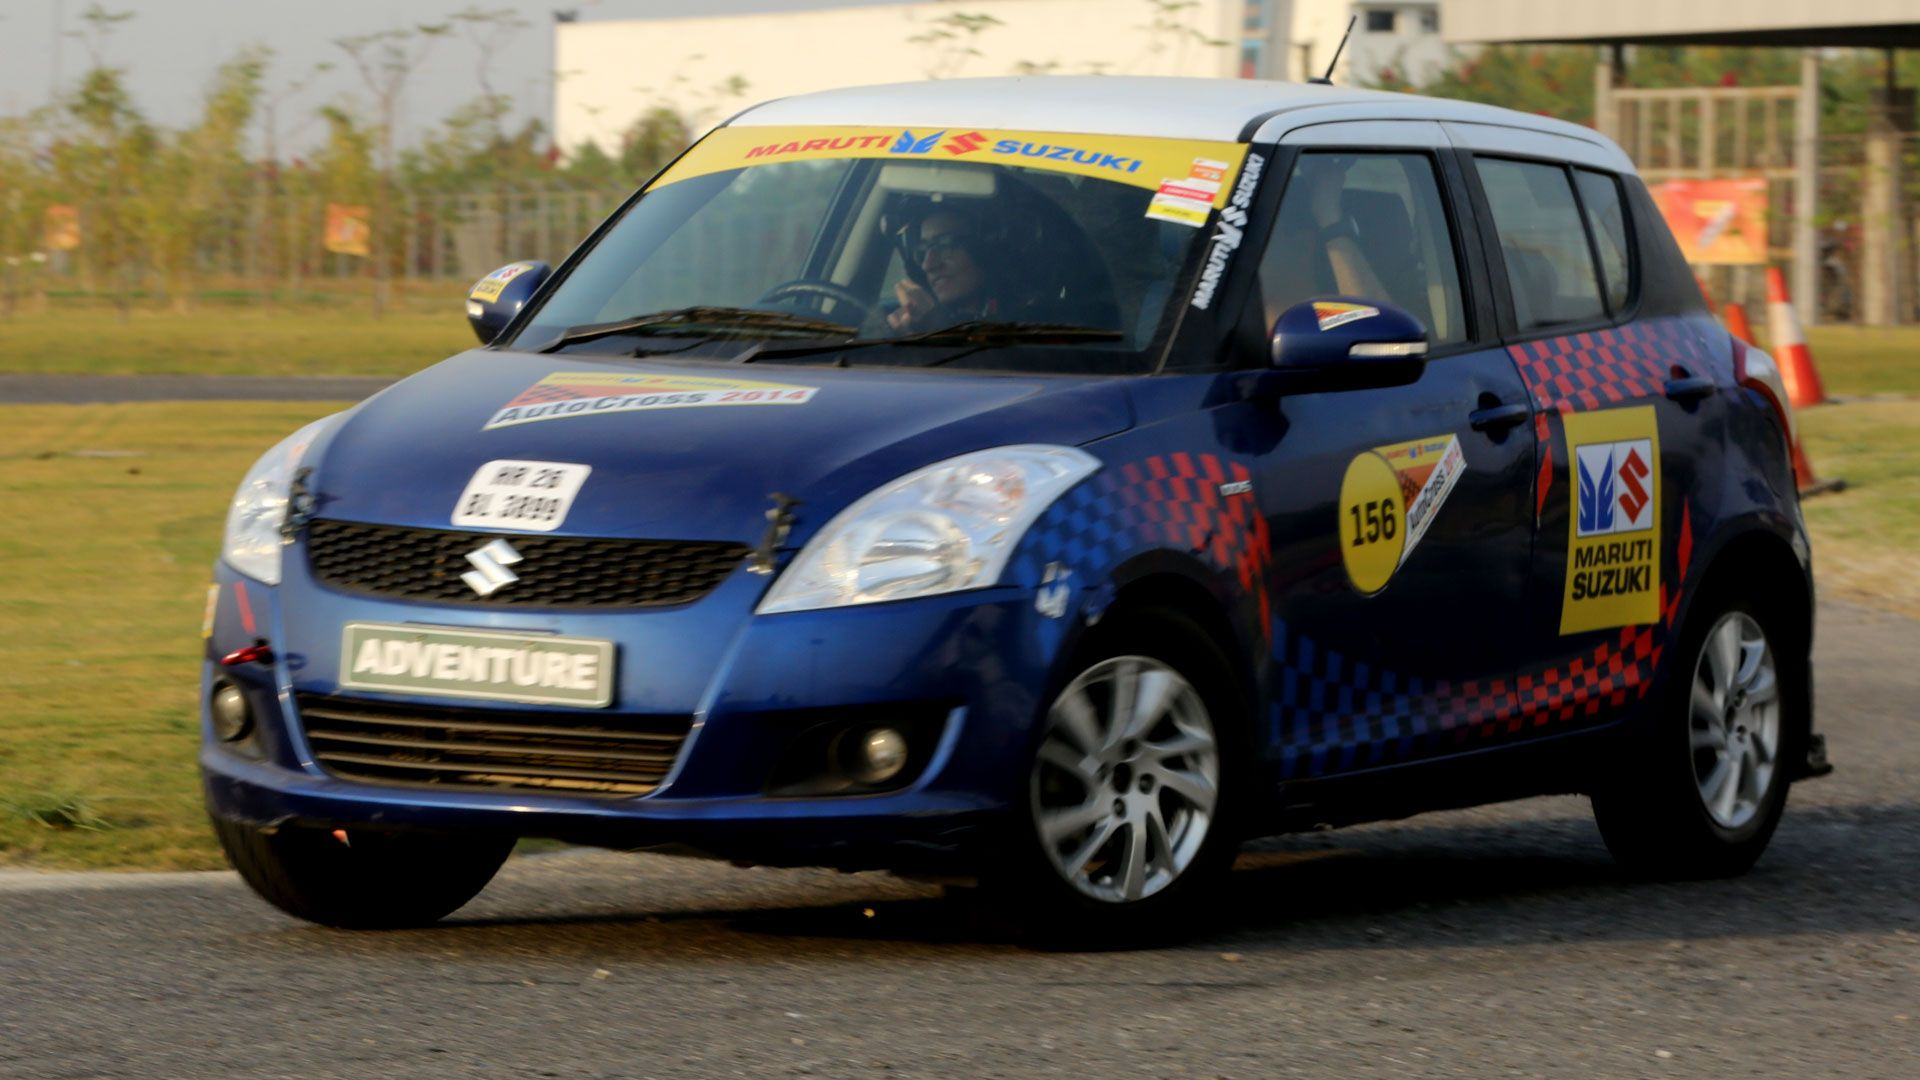 13th edition of Maruti Suzuki Autocross concluded successfully at Buddh International Circuit